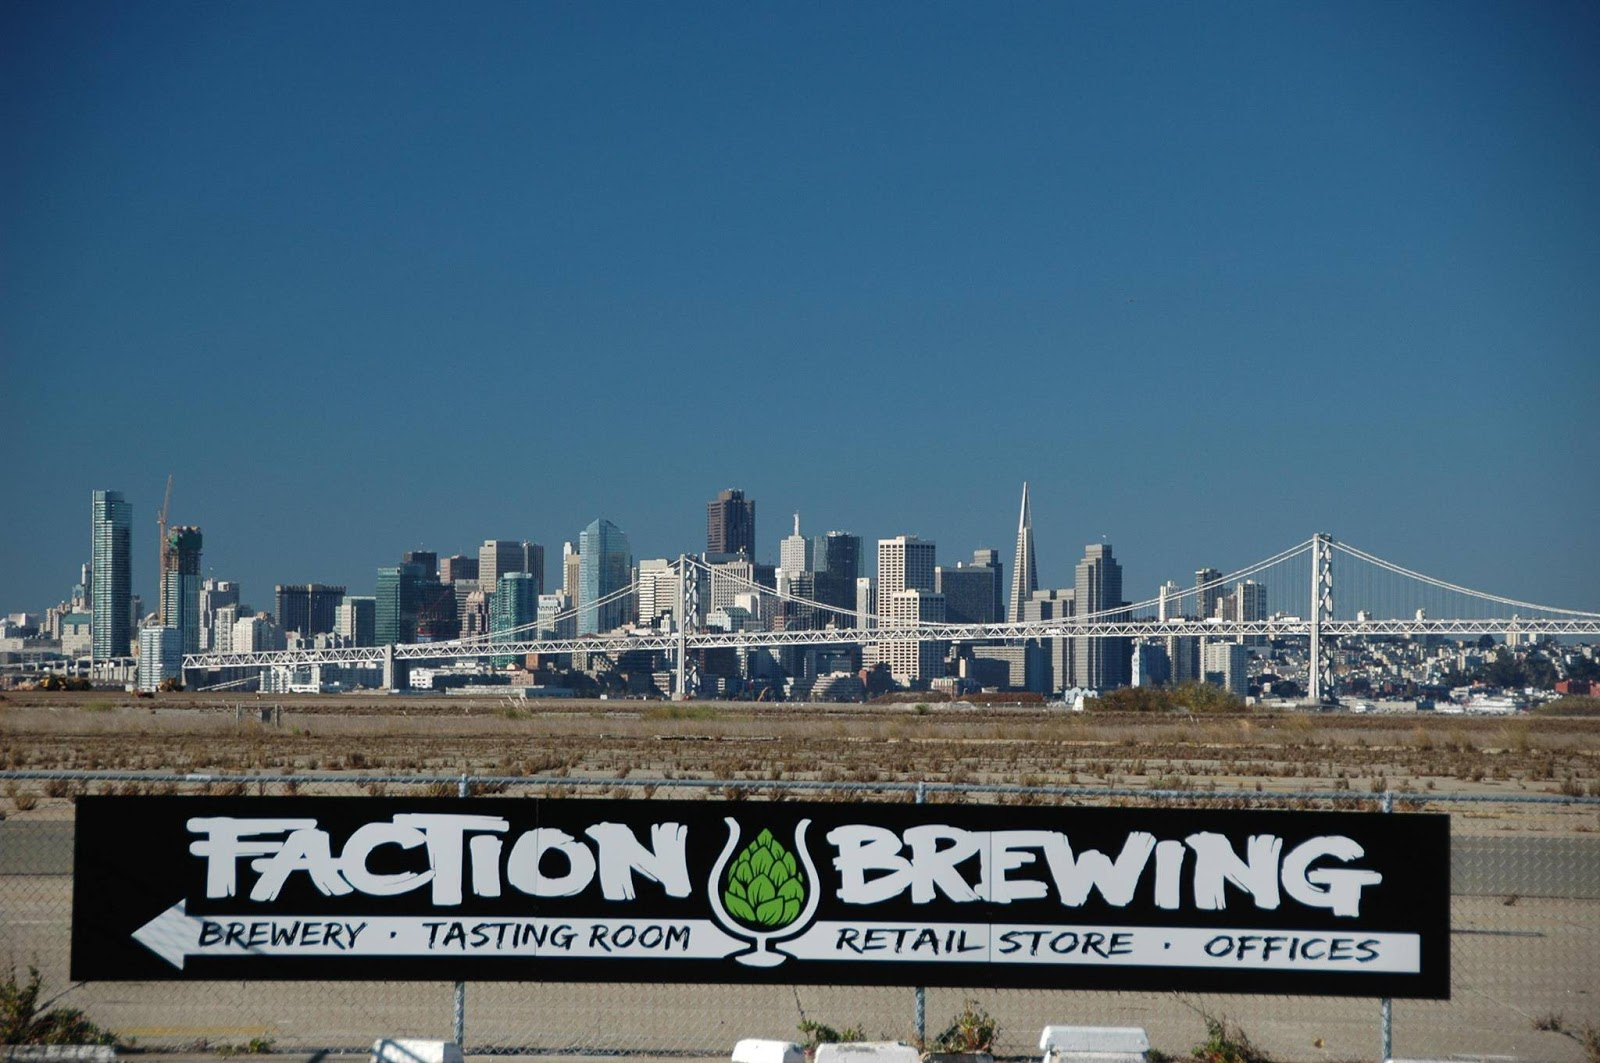 Faction Brewing View